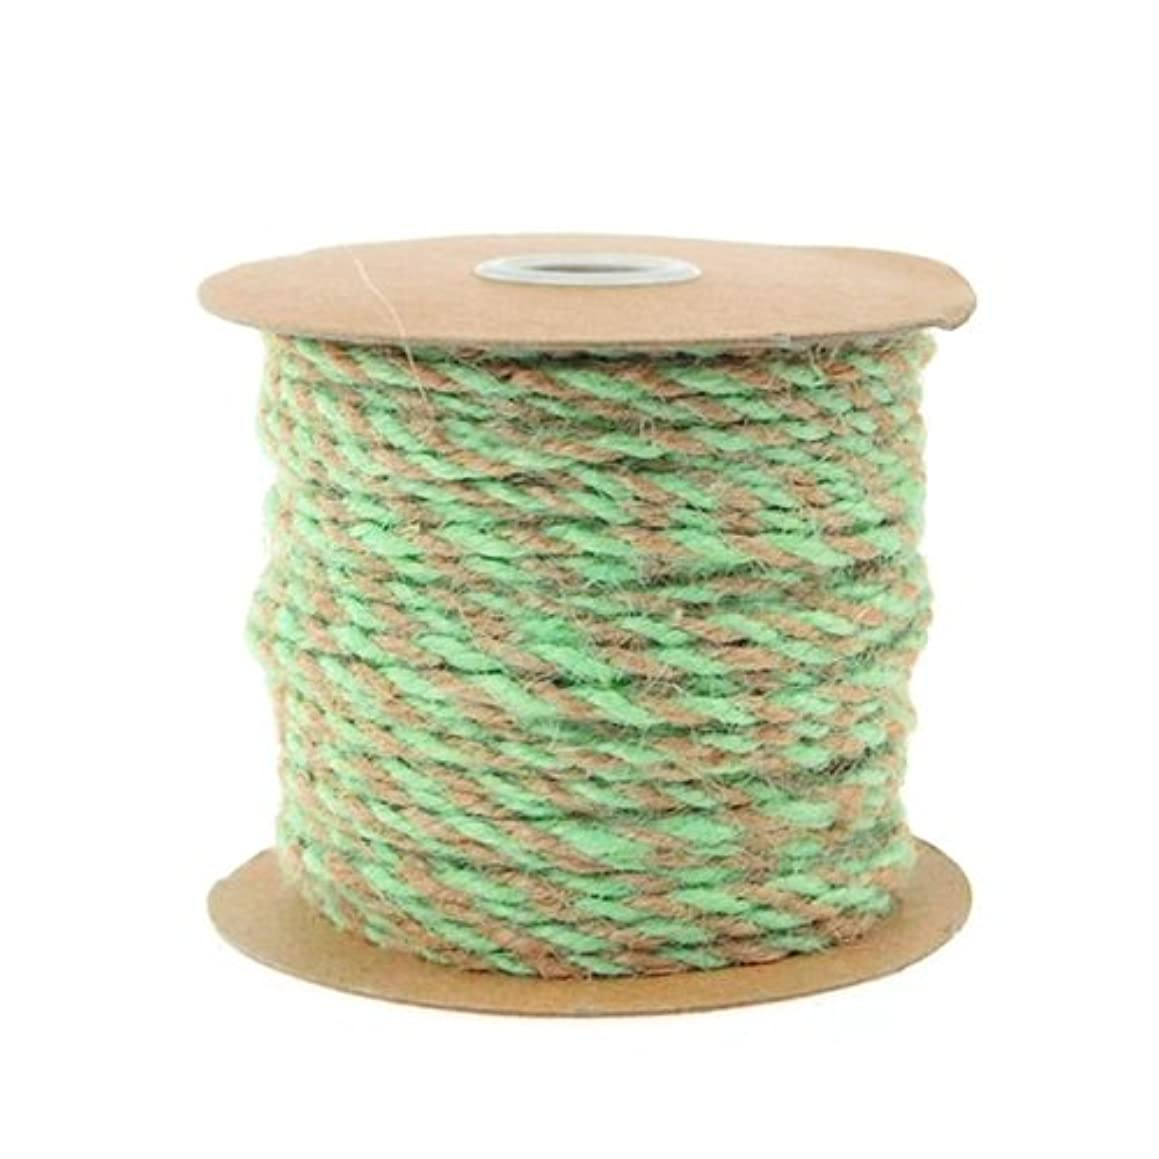 Homeford Firefly Imports Jute Twine Cord Ribbon Bi-Colored, 5/64-Inch, 50 Yards, Mint Green,